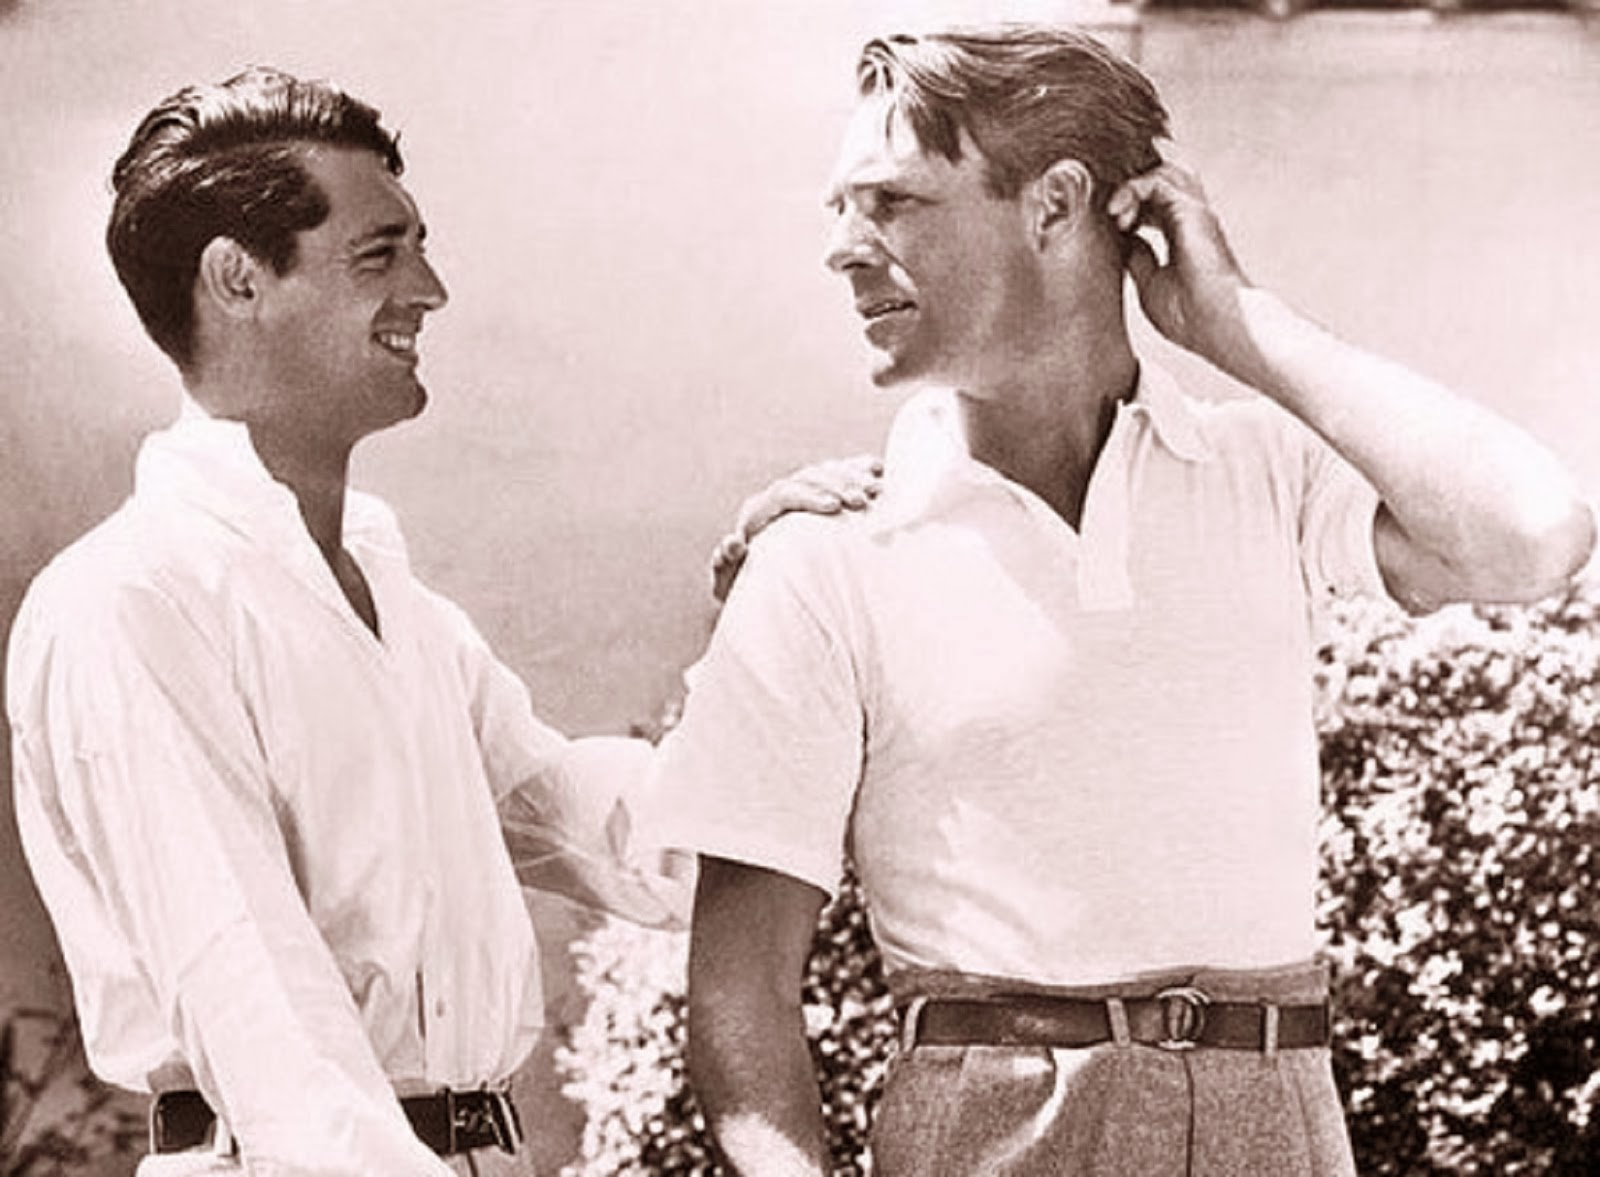 Cary Grant and Randolph Scott. well, think this photo sums up their Cary grant and randolph scott photo